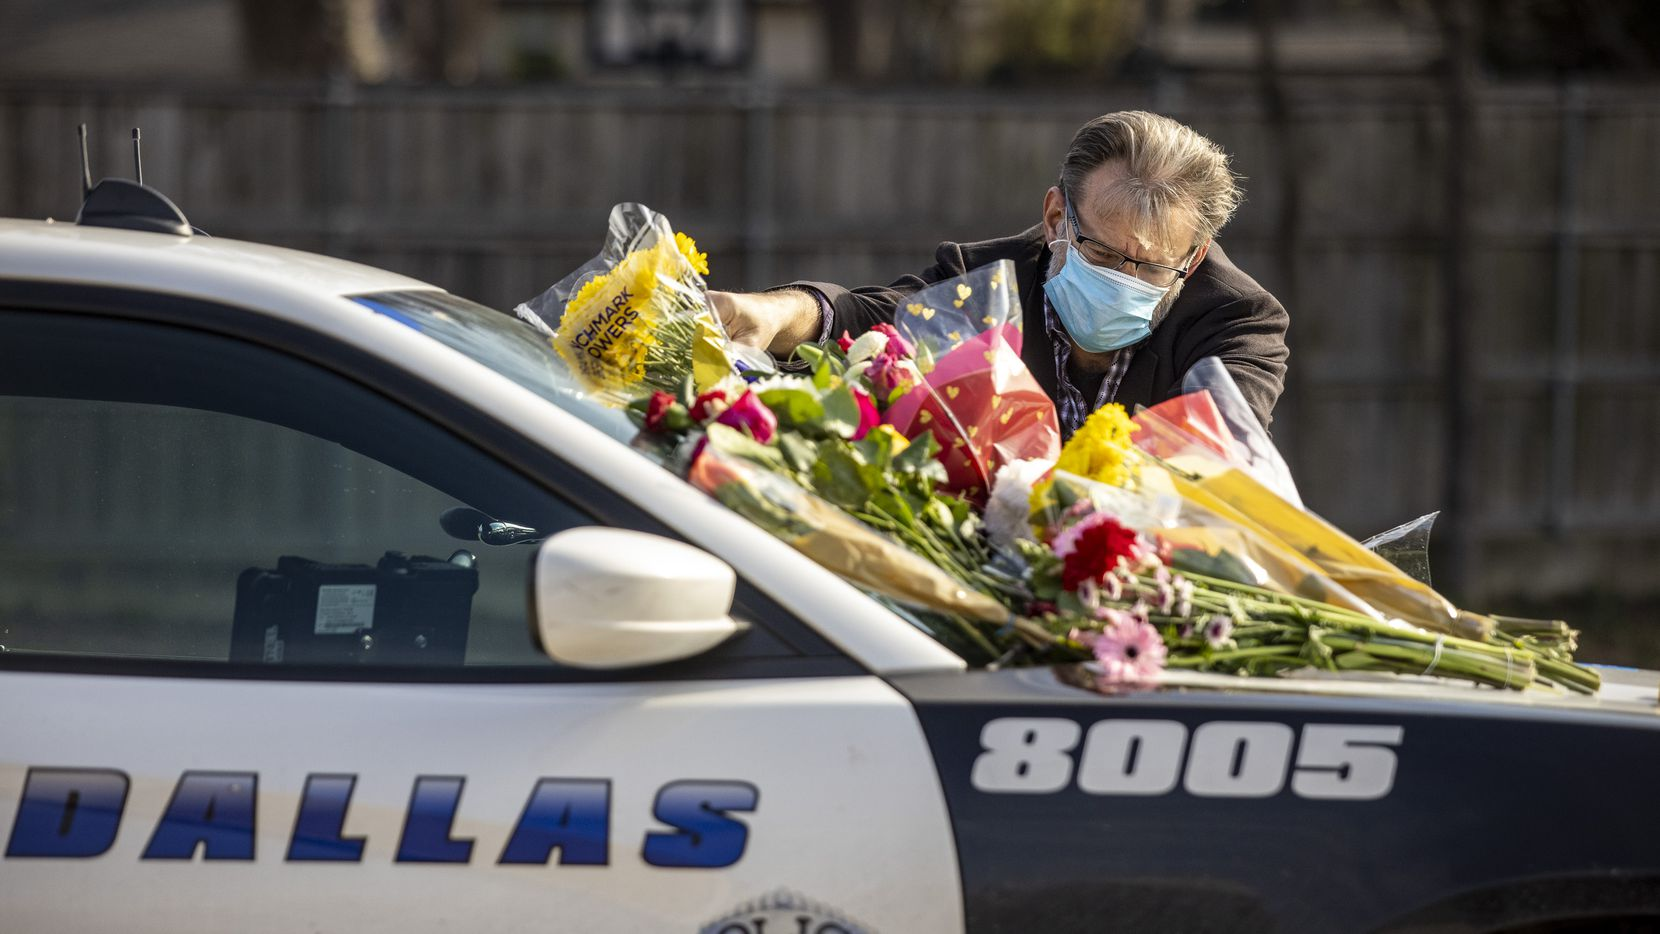 Steve Martindale pays his respects to fallen Dallas Police officer Mitchell Penton at the DPD Northeast Patrol Division building on Saturday, Feb. 13, 2021, in Dallas. Officials say Penton was struck by an intoxicated driver around 1:45 a.m. on Saturday when Penton was working a crash scene in the northbound lanes of the North Central Expressway at Walnut Hill Lane. (Lynda M. González/The Dallas Morning News)